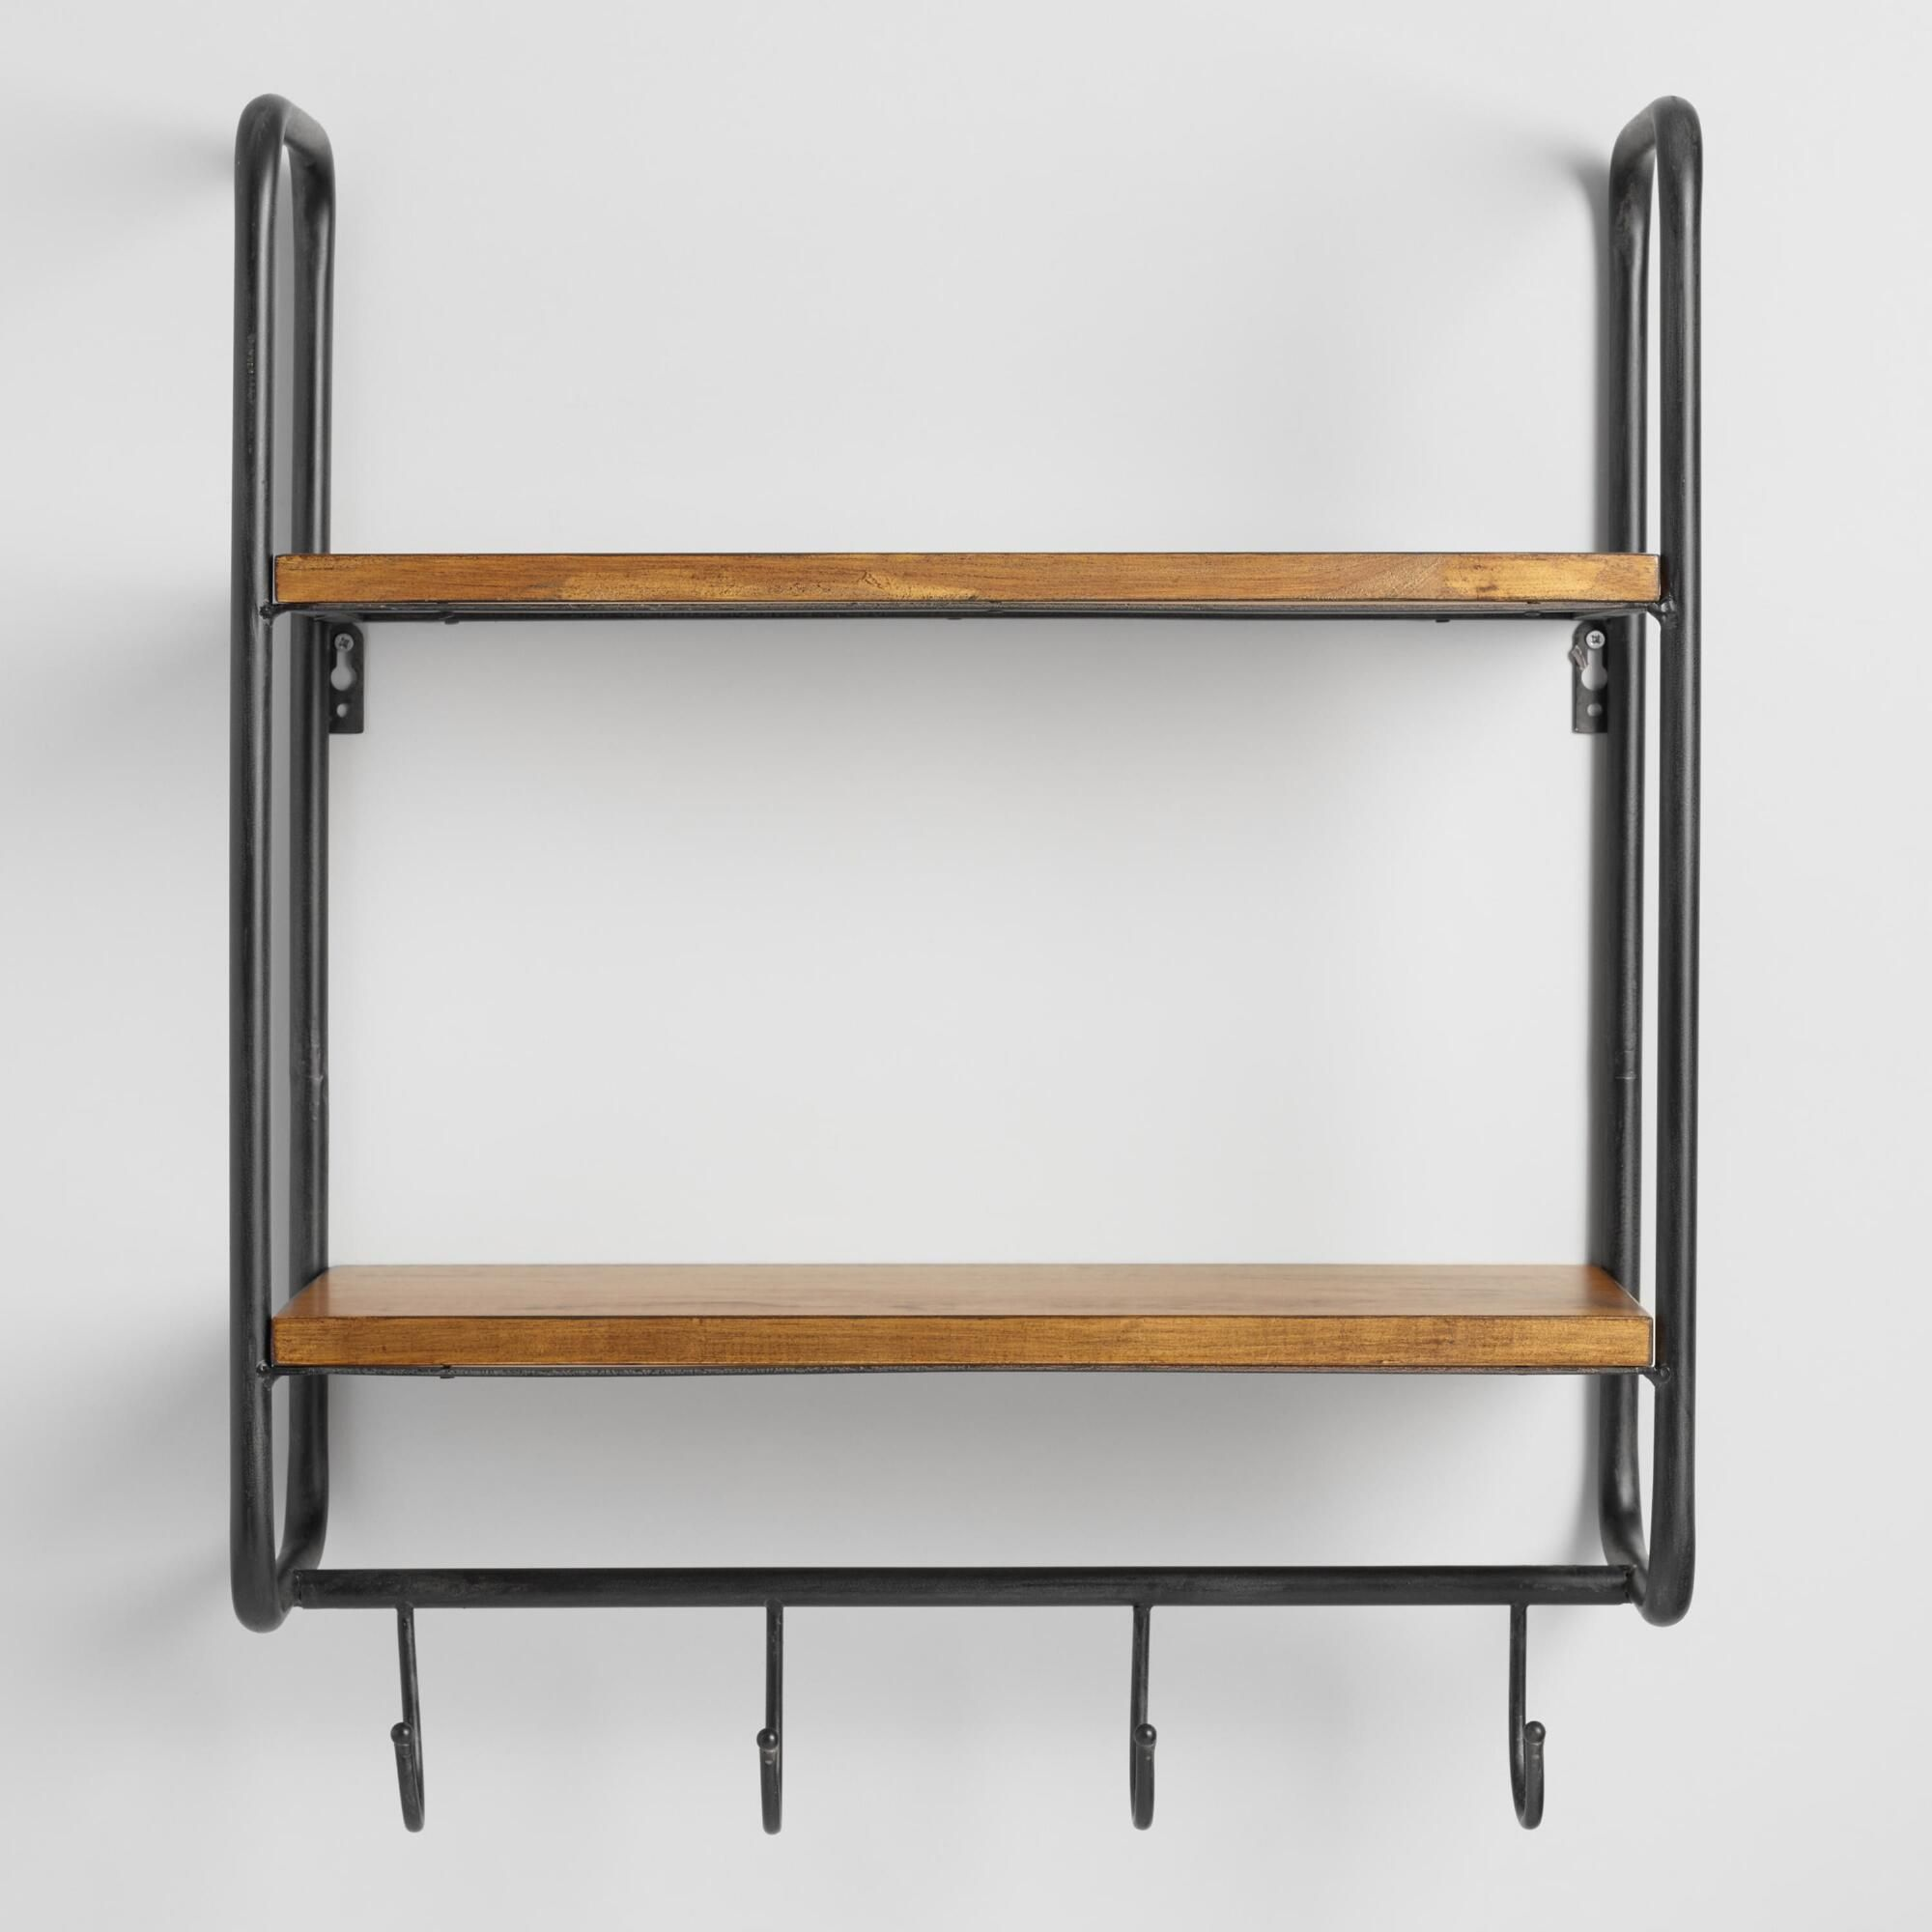 Maximize Organization In Your Kitchen Or Entryway With Our Versatile Wall Storage Unit Featuring A Black Metal Frame Two Wooden Shelves And Four Hooks